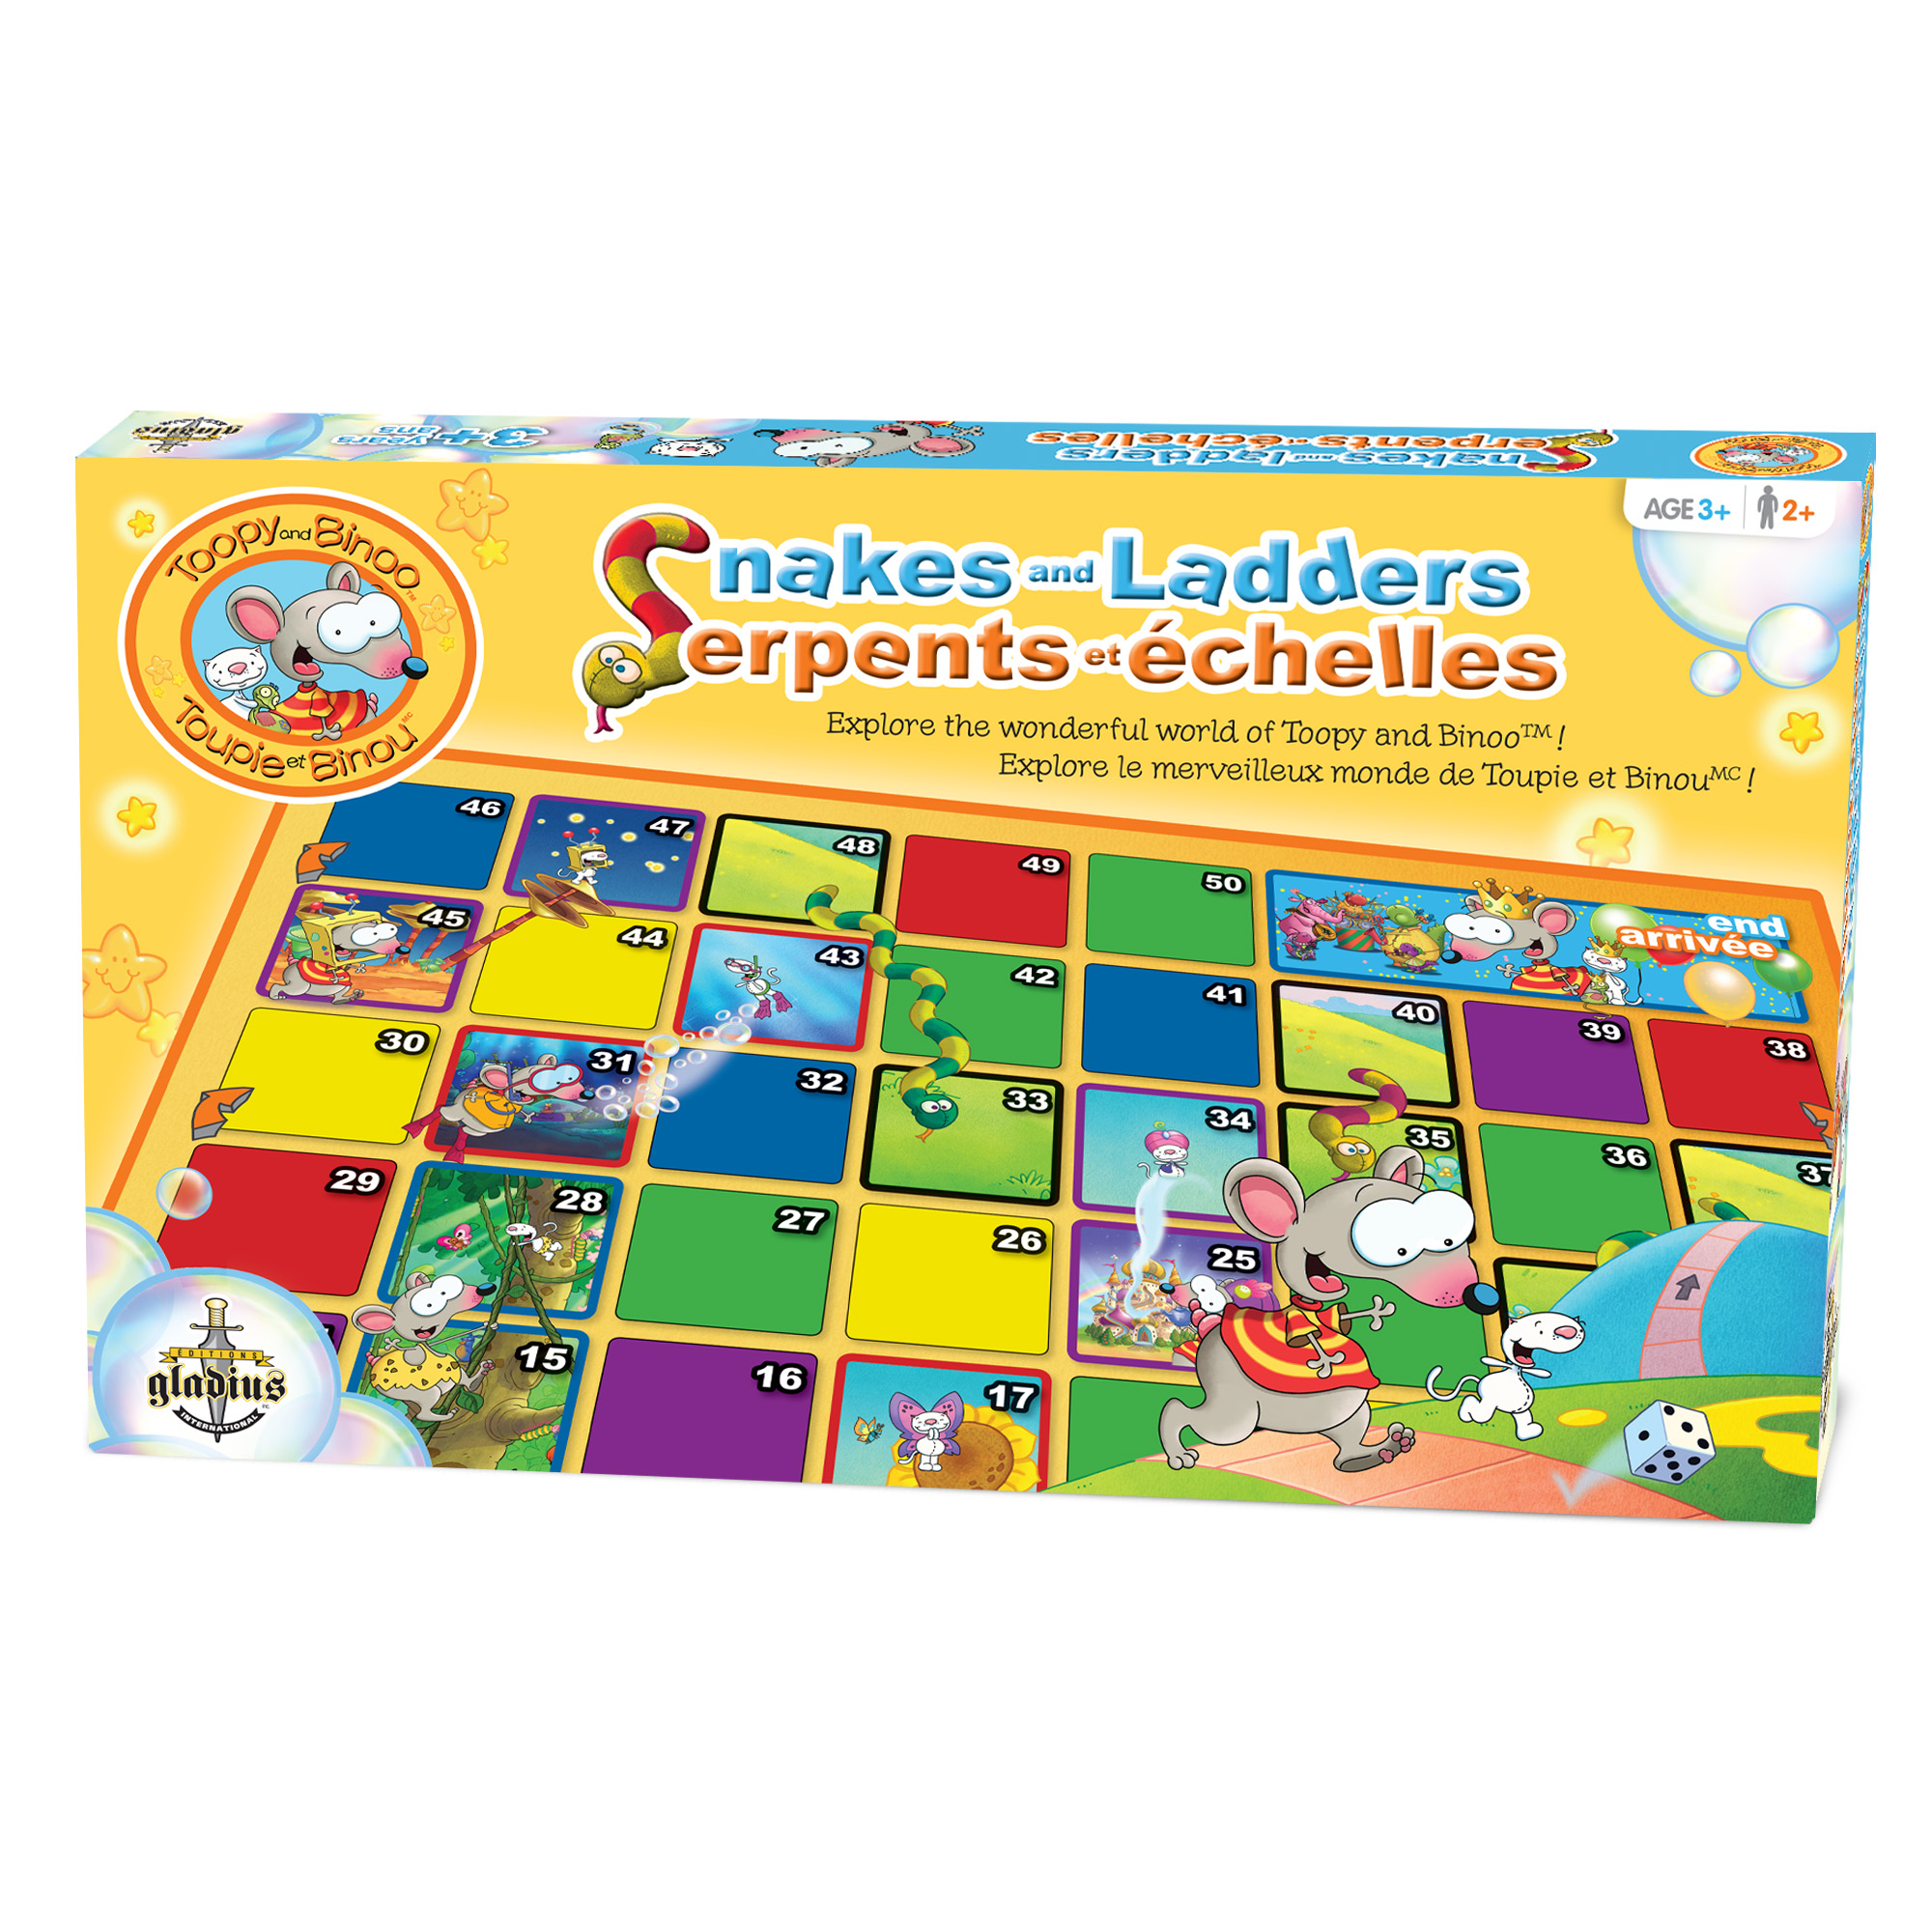 Serpents et échelles - Toupie et Binou boîte / Snakes and Ladder - Toopy and Binoo box